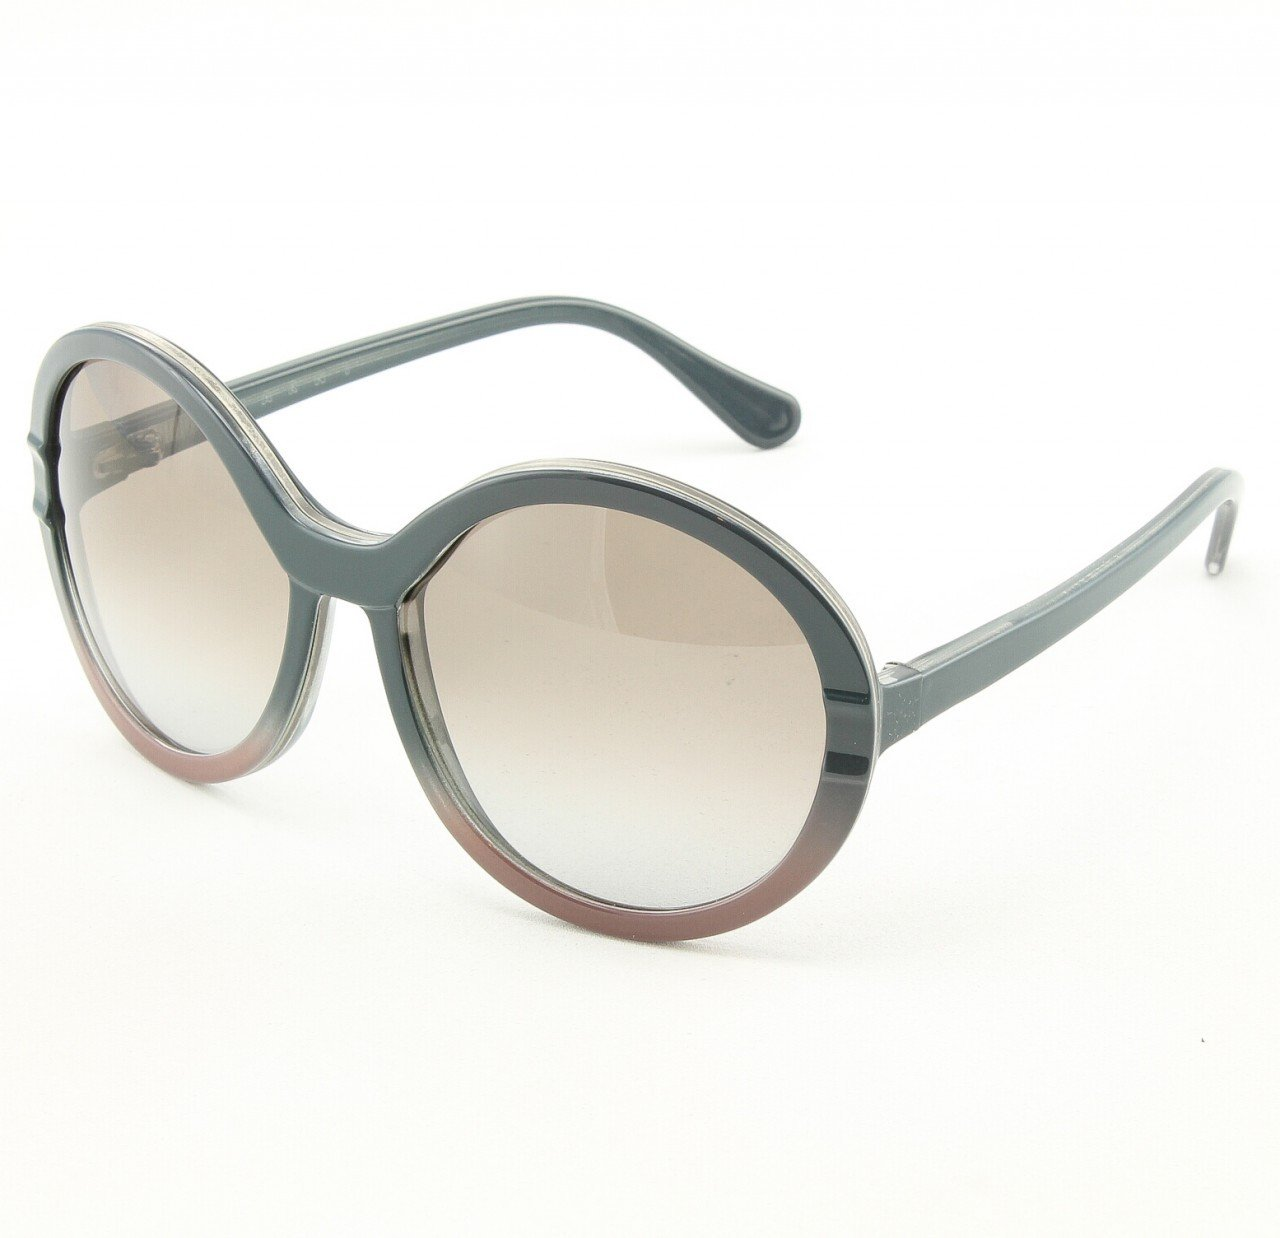 Marni MA145 Sunglasses Col. 04 Classic Gray Dusty Rose w/Decorative Accent with Gray Gradient Lenses